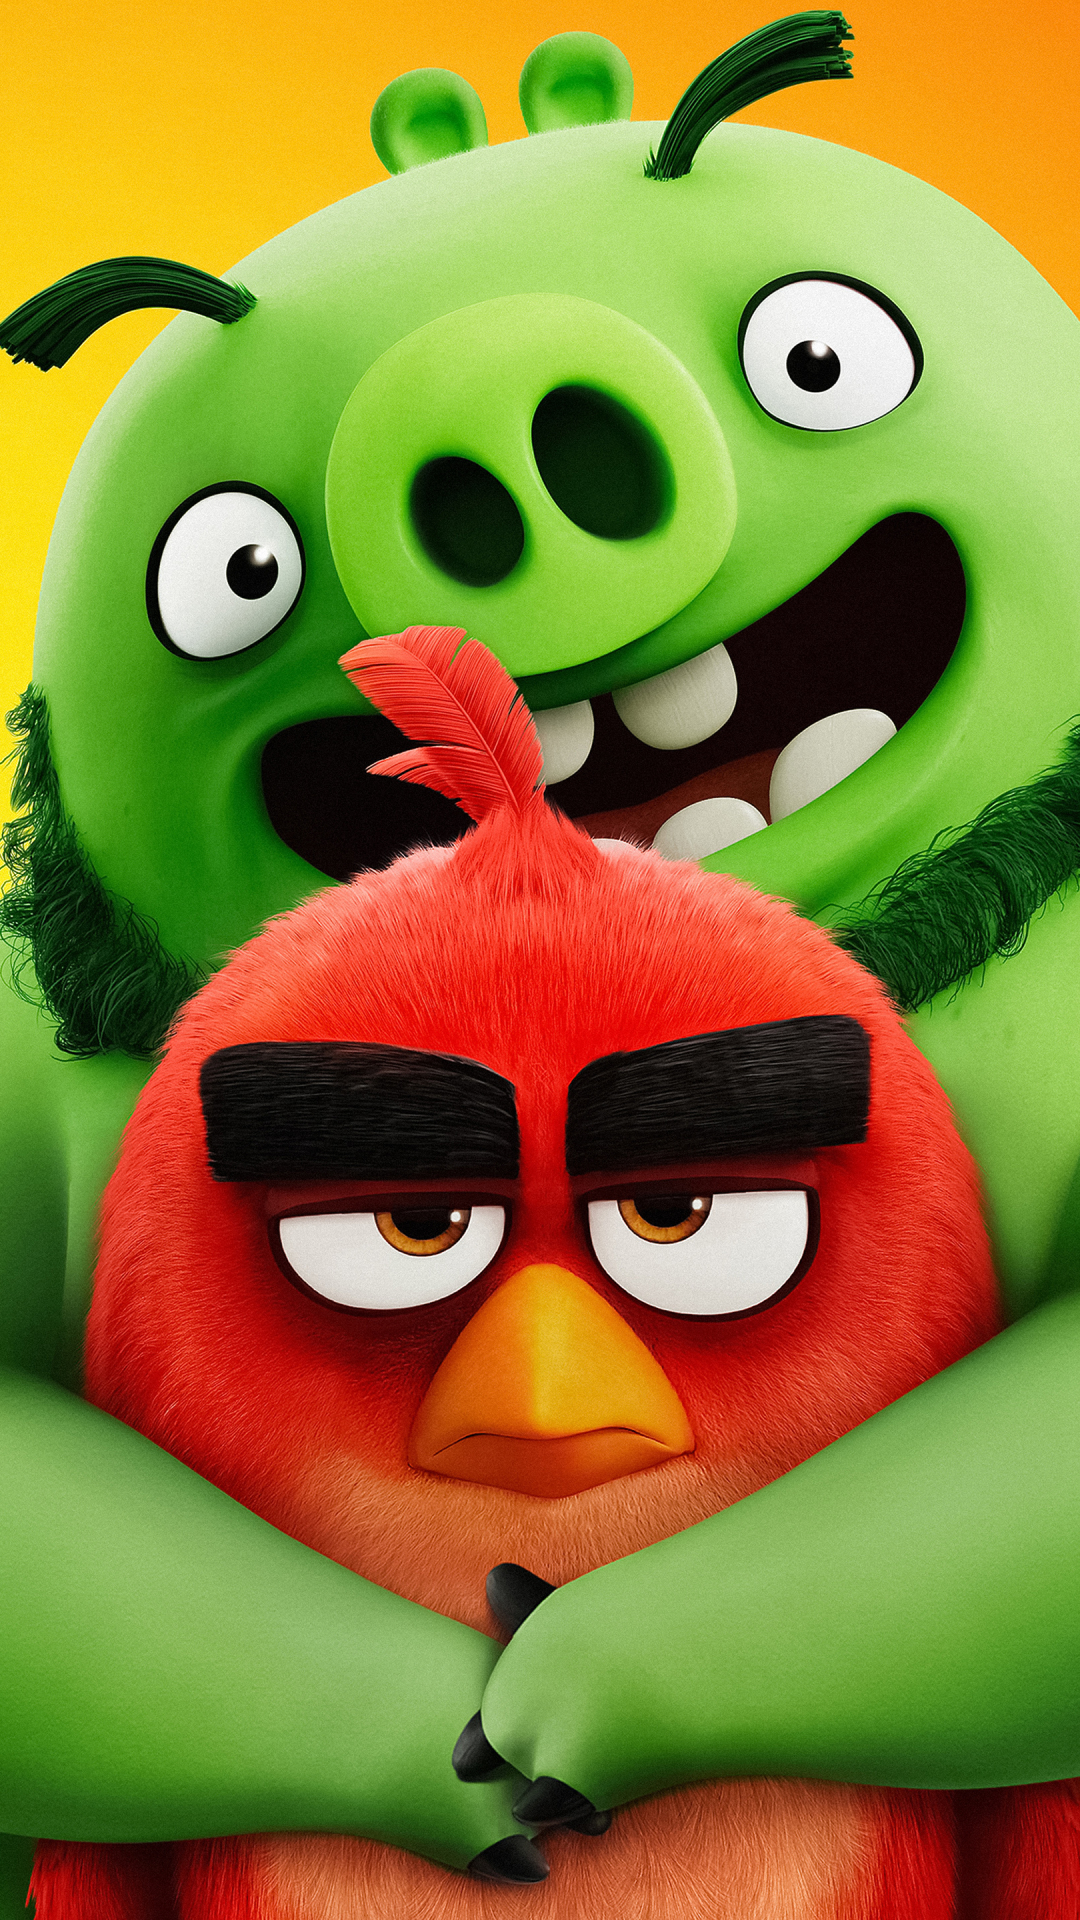 Movie The Angry Birds Movie 2 1080x1920 Wallpaper Id 809647 Mobile Abyss